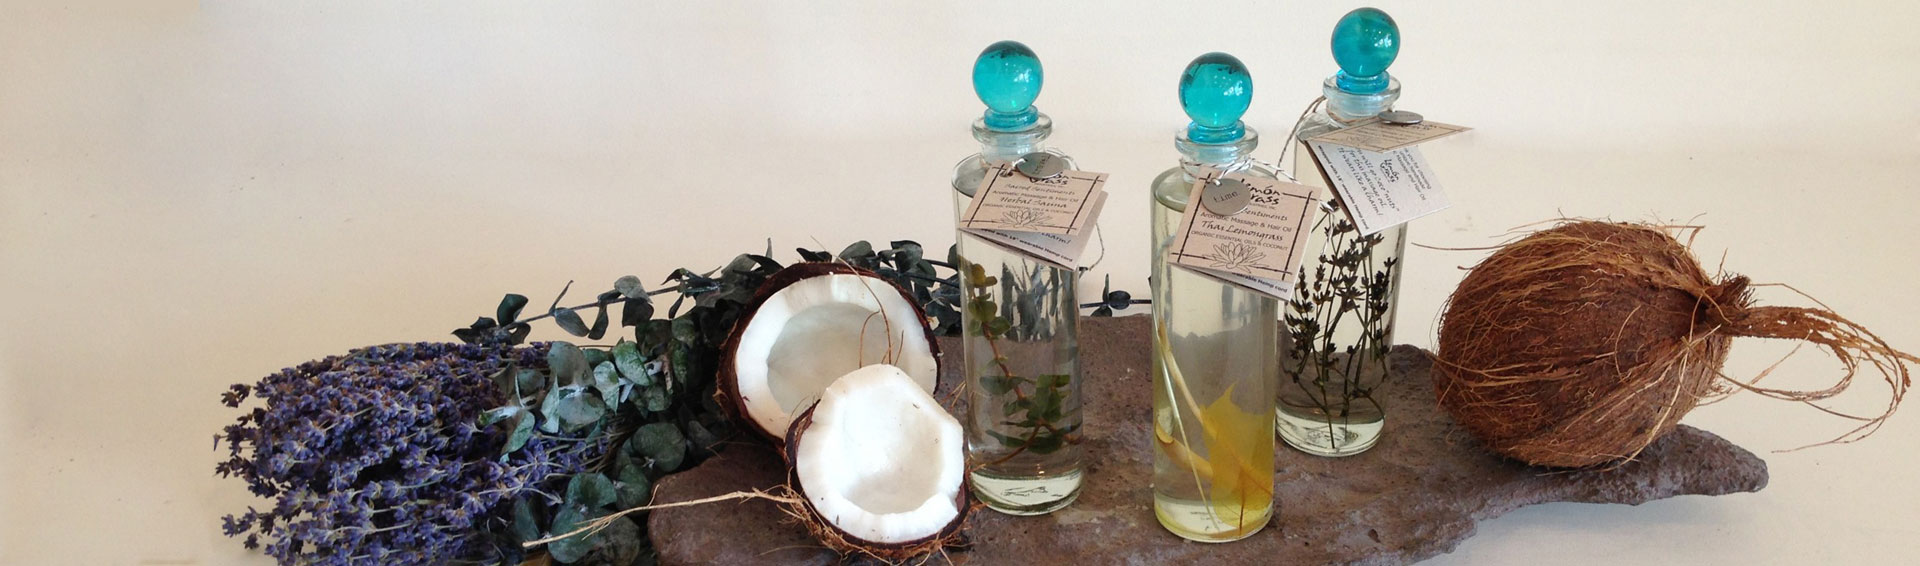 coconut-massage-oils-home-page